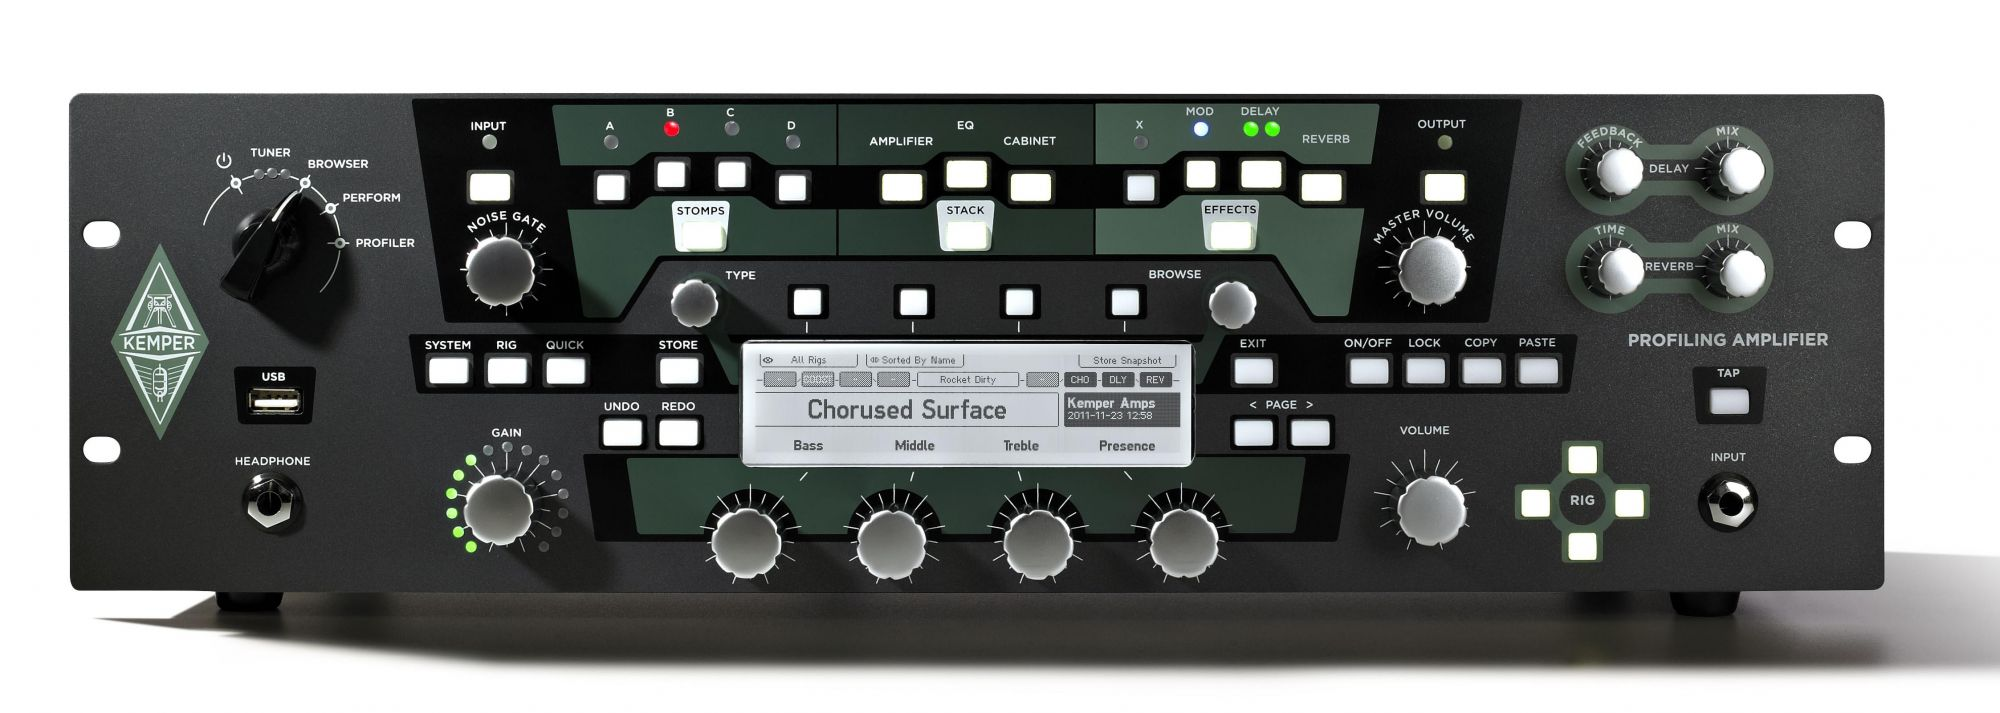 Top News Kemper Profiler Rack Amp Profiler Powerhead